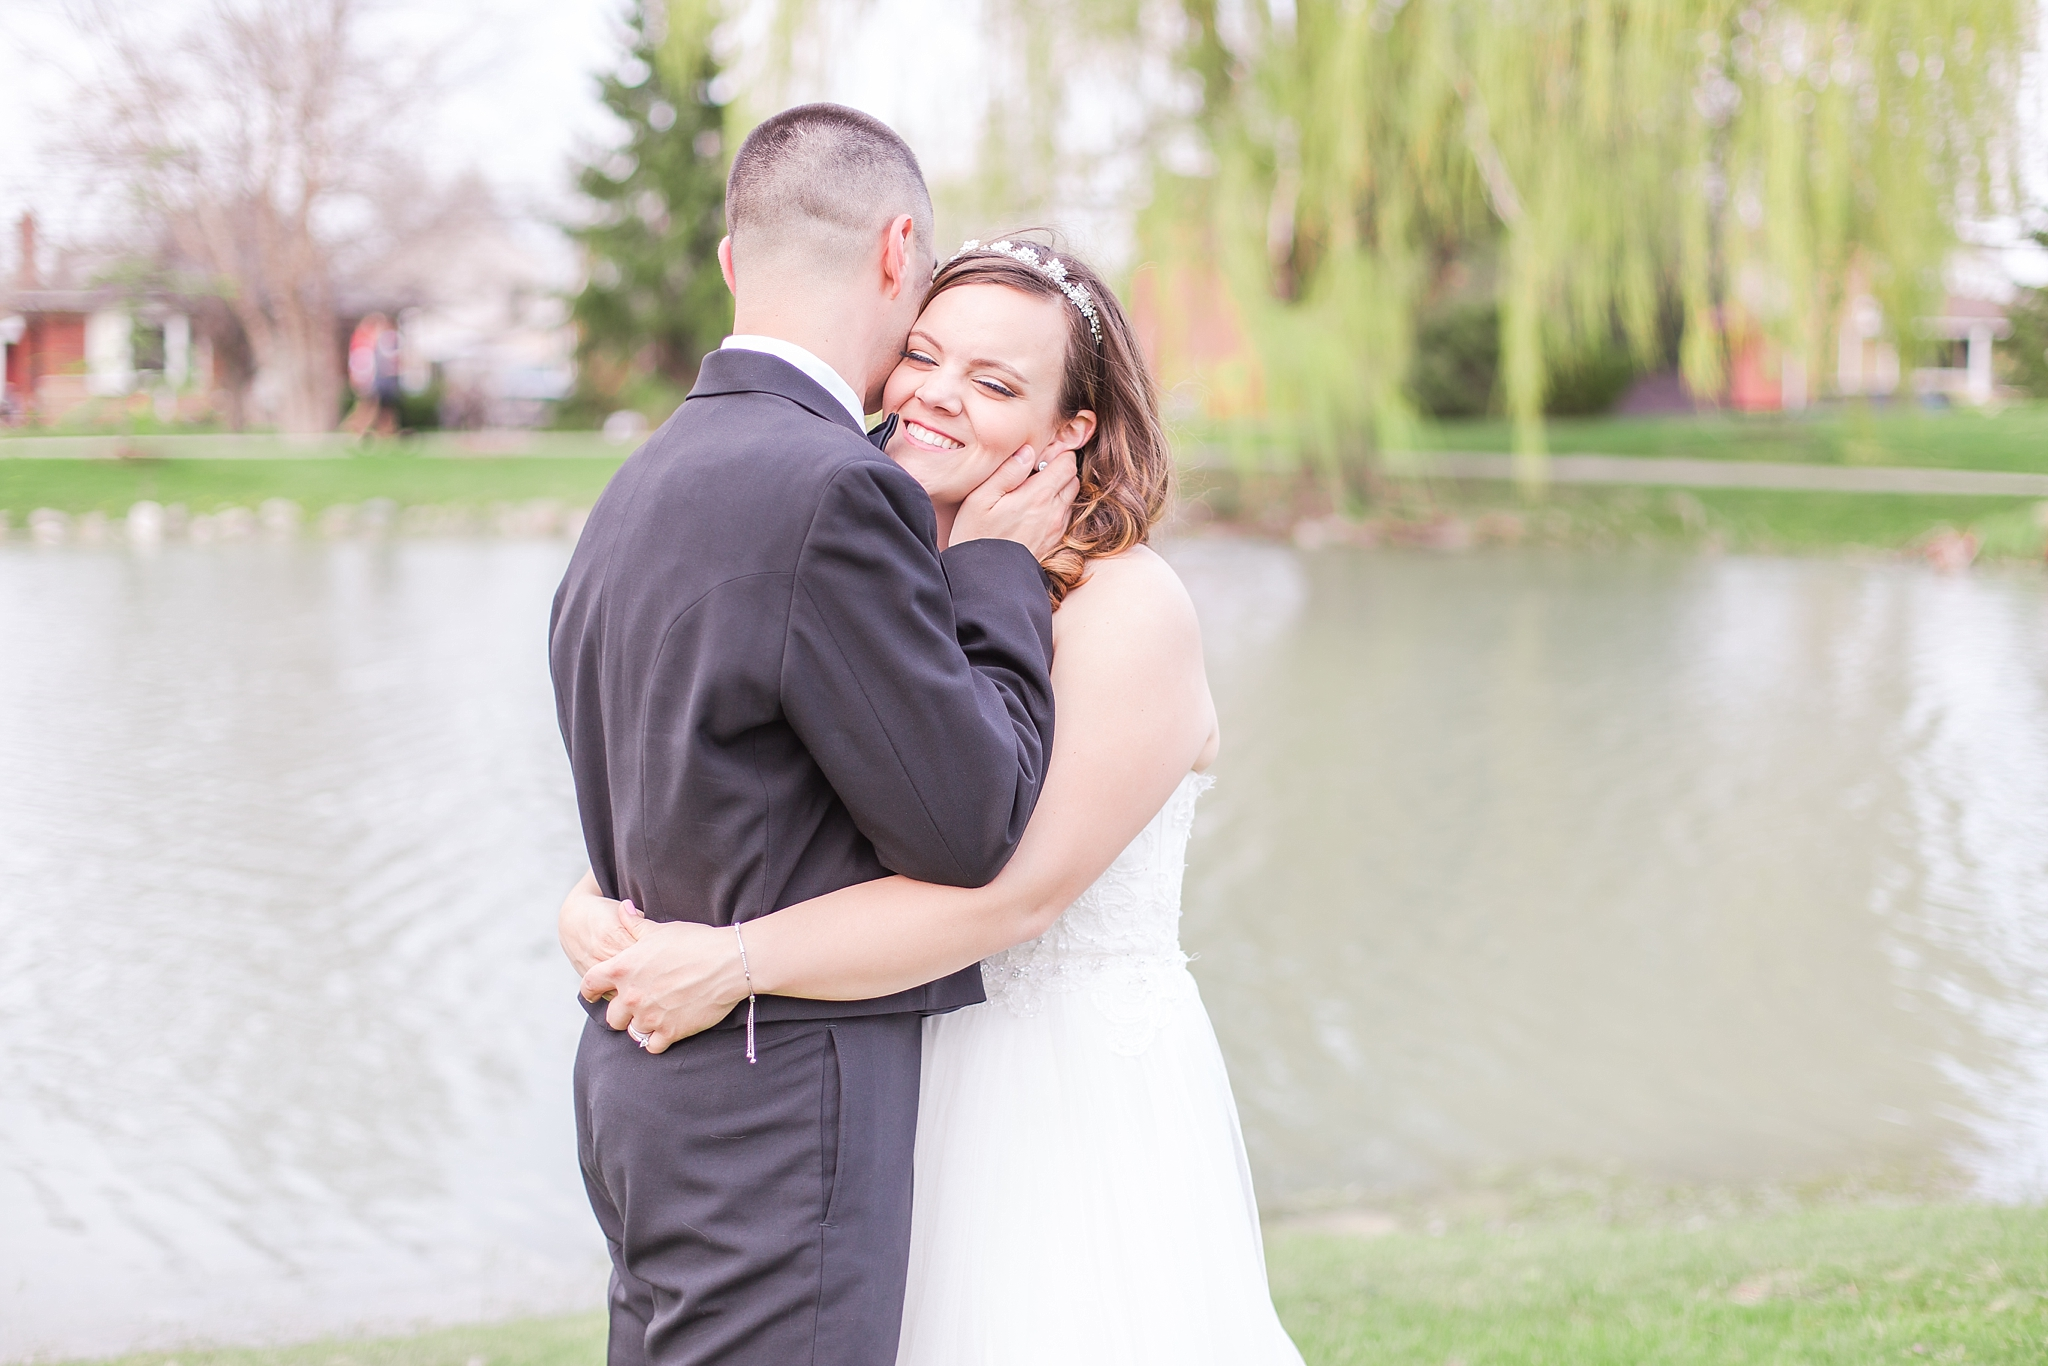 romantic-artful-candid-wedding-photos-in-st-clair-shores-at-the-white-house-wedding-chapel-by-courtney-carolyn-photography_0055.jpg